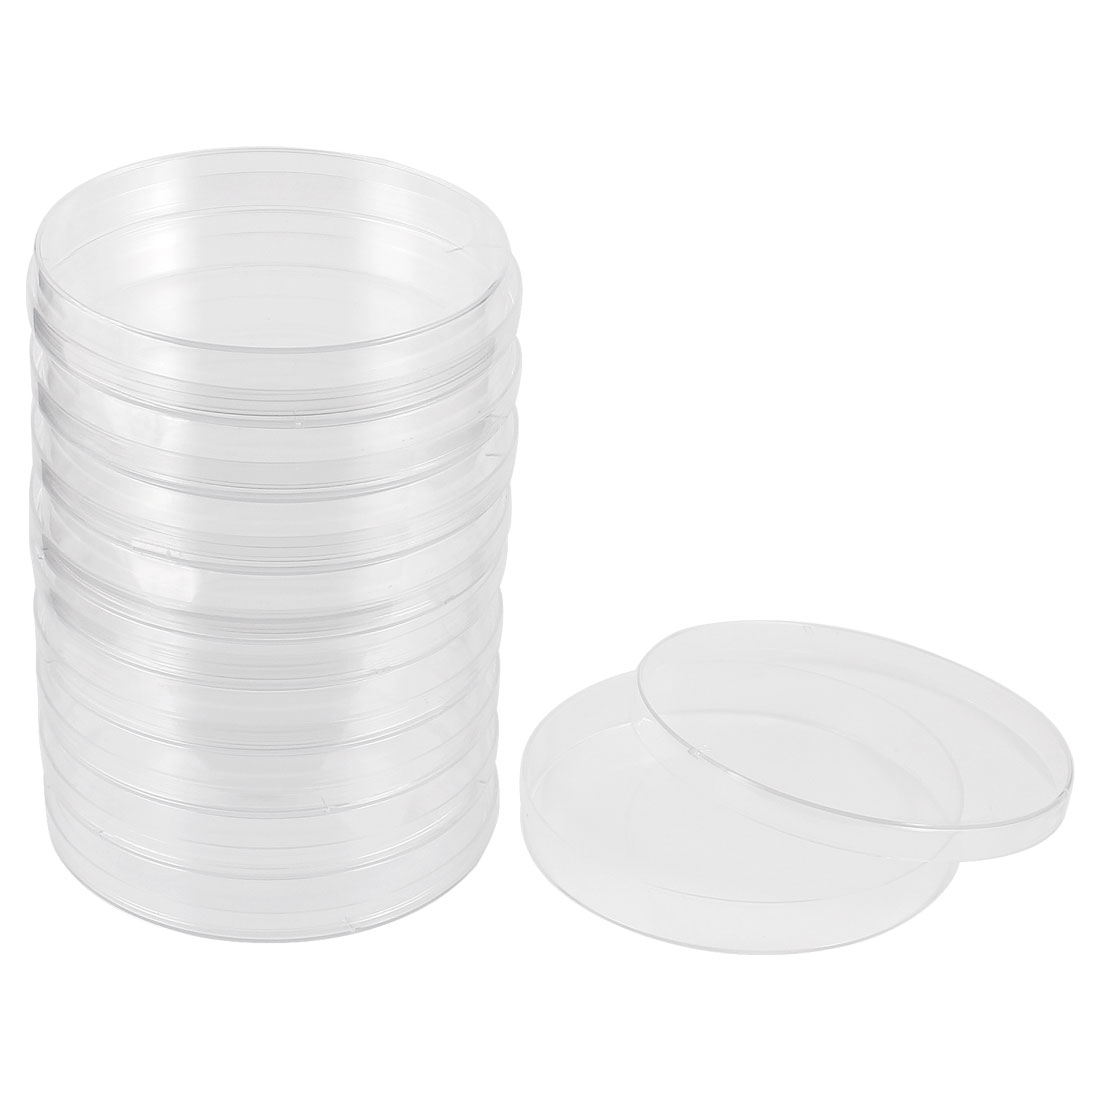 Labor Replacement Part 90mm Diameter Clear Plastic Cell Culture Dish 10 Pcs